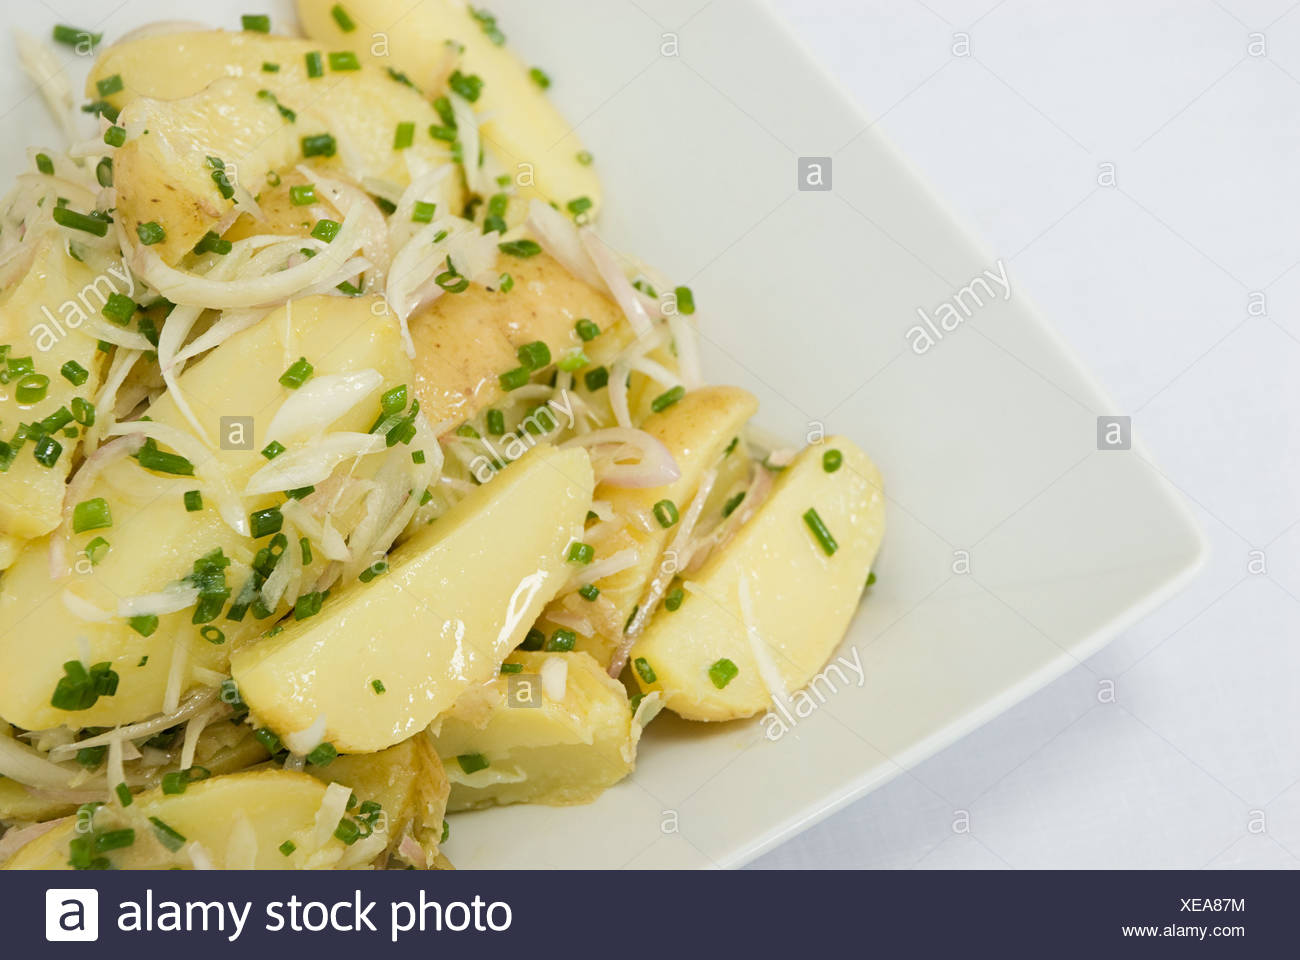 Potatoes with onions and chives - Stock Image